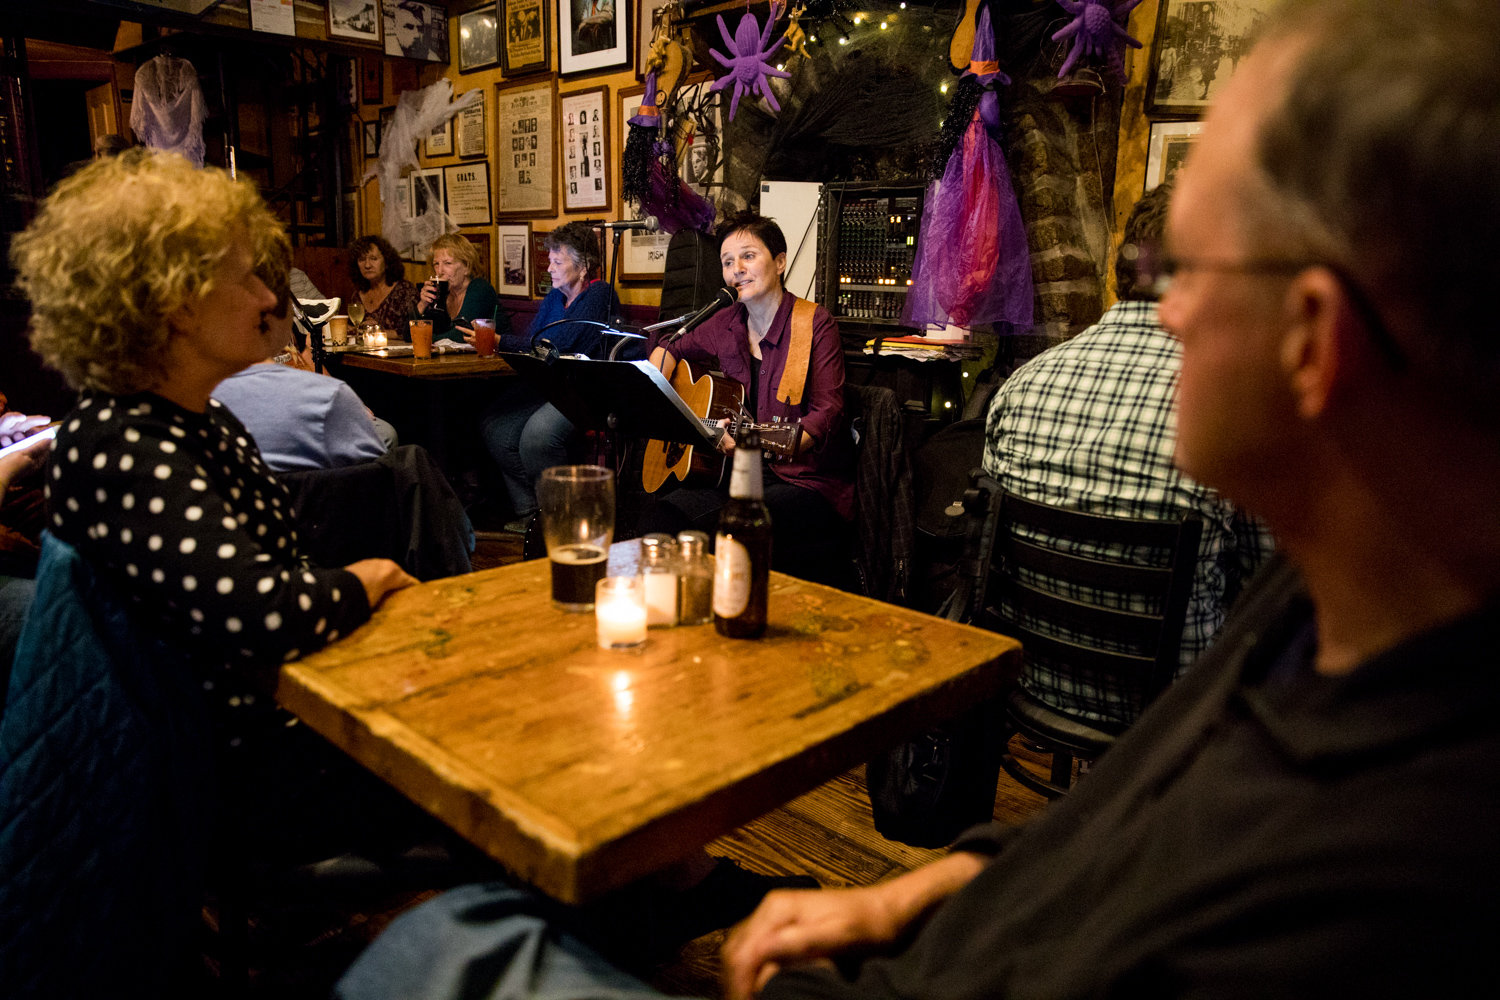 Music fills the space at An Beal Bocht Café every Friday night, which regularly hosts a variety of musical and cultural events, including poetry and theatre.